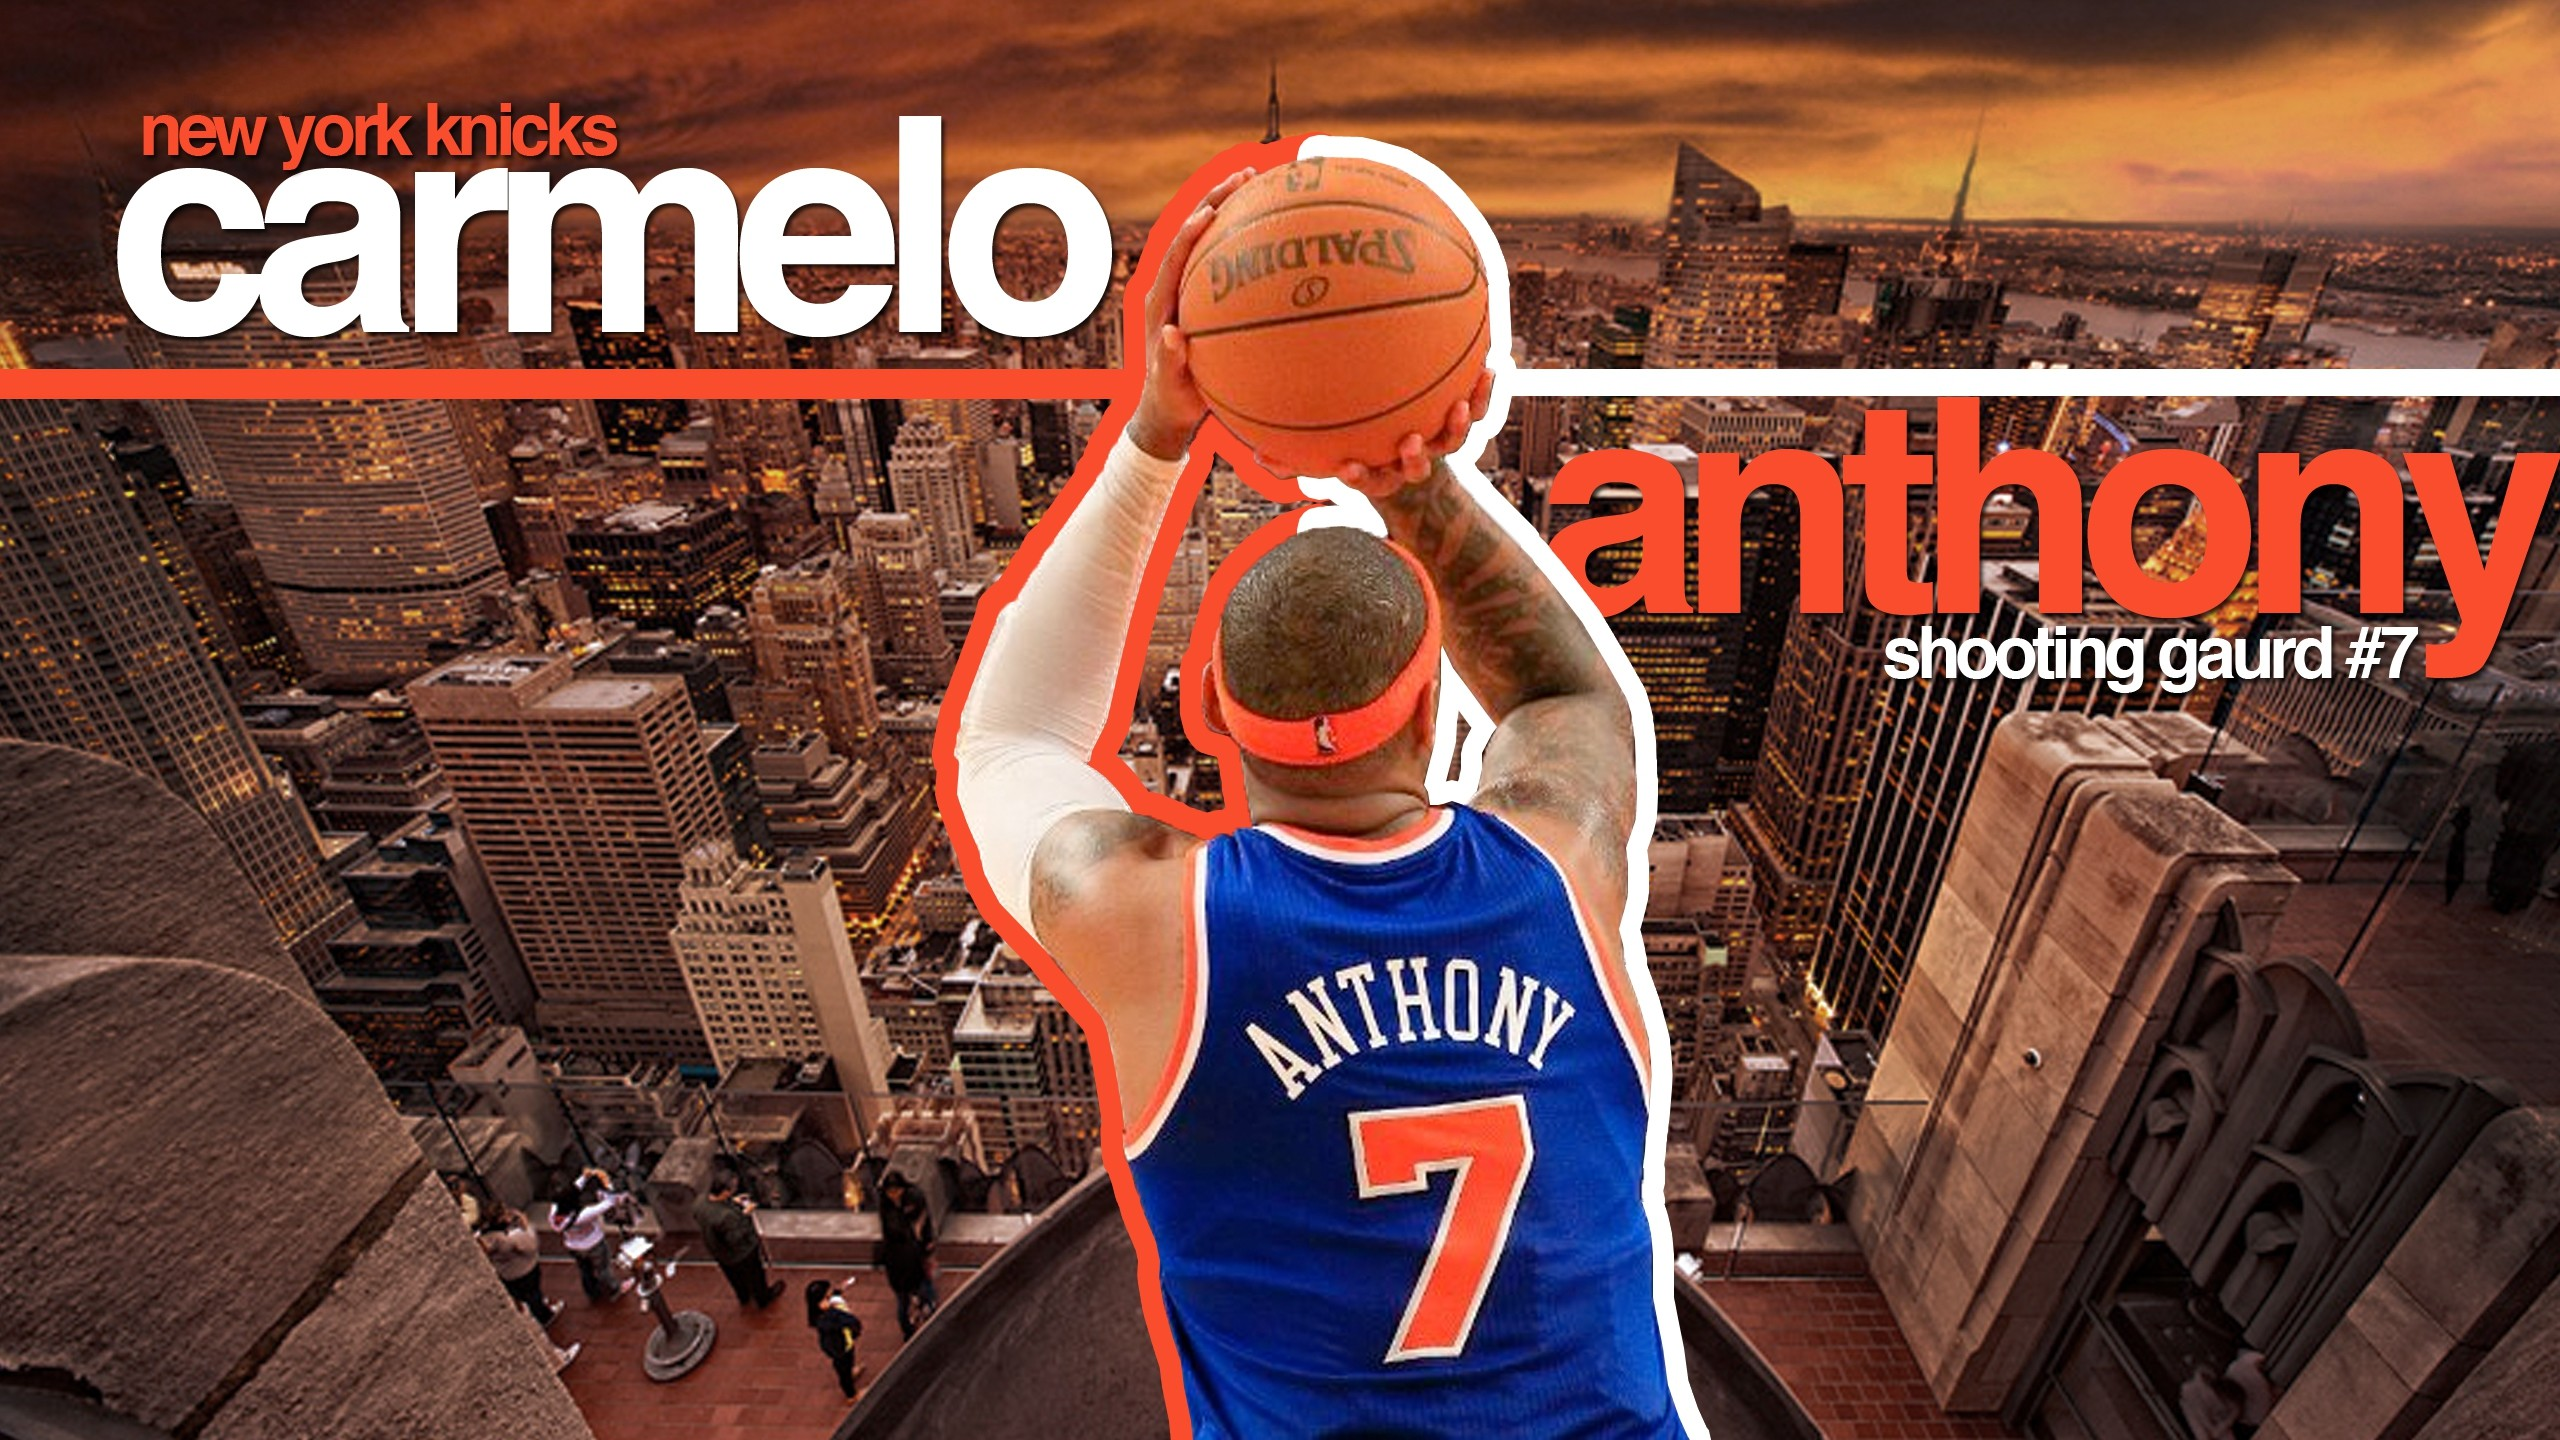 2560x1440 HD Carmelo Anthony New York Knicks Wallpapers.